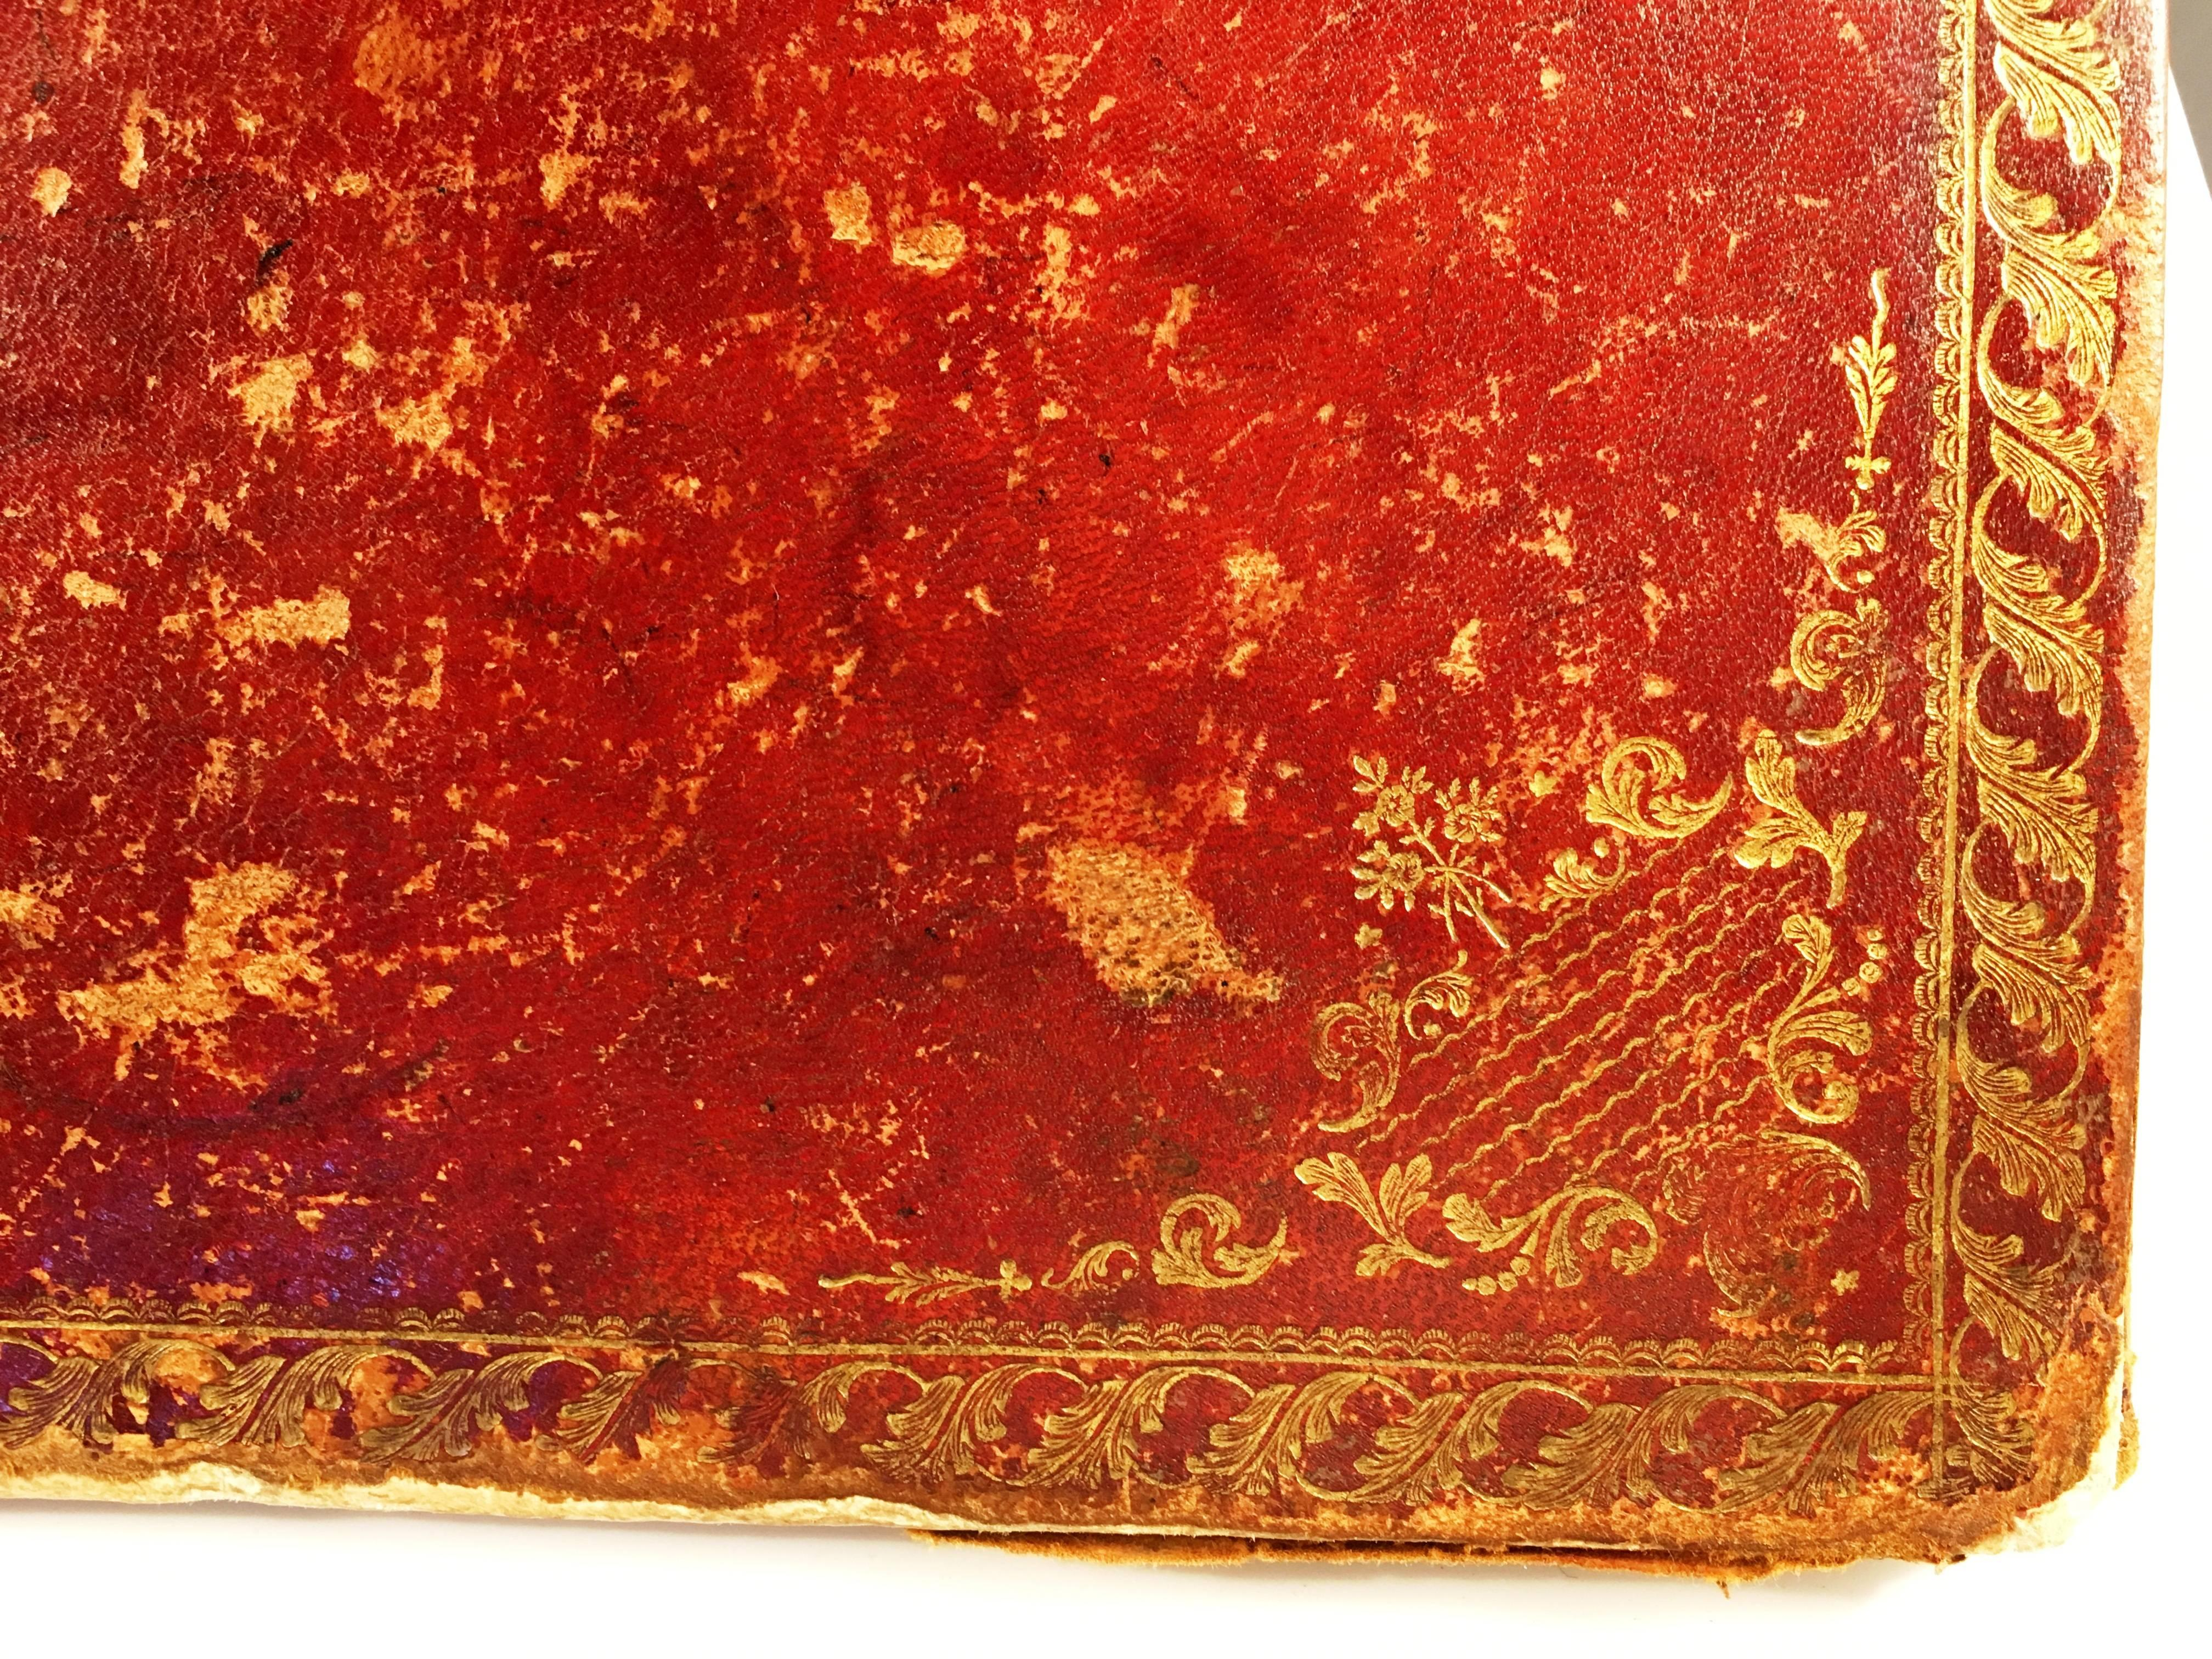 Large Red Leather Desk Blotter 18th Century For Sale at